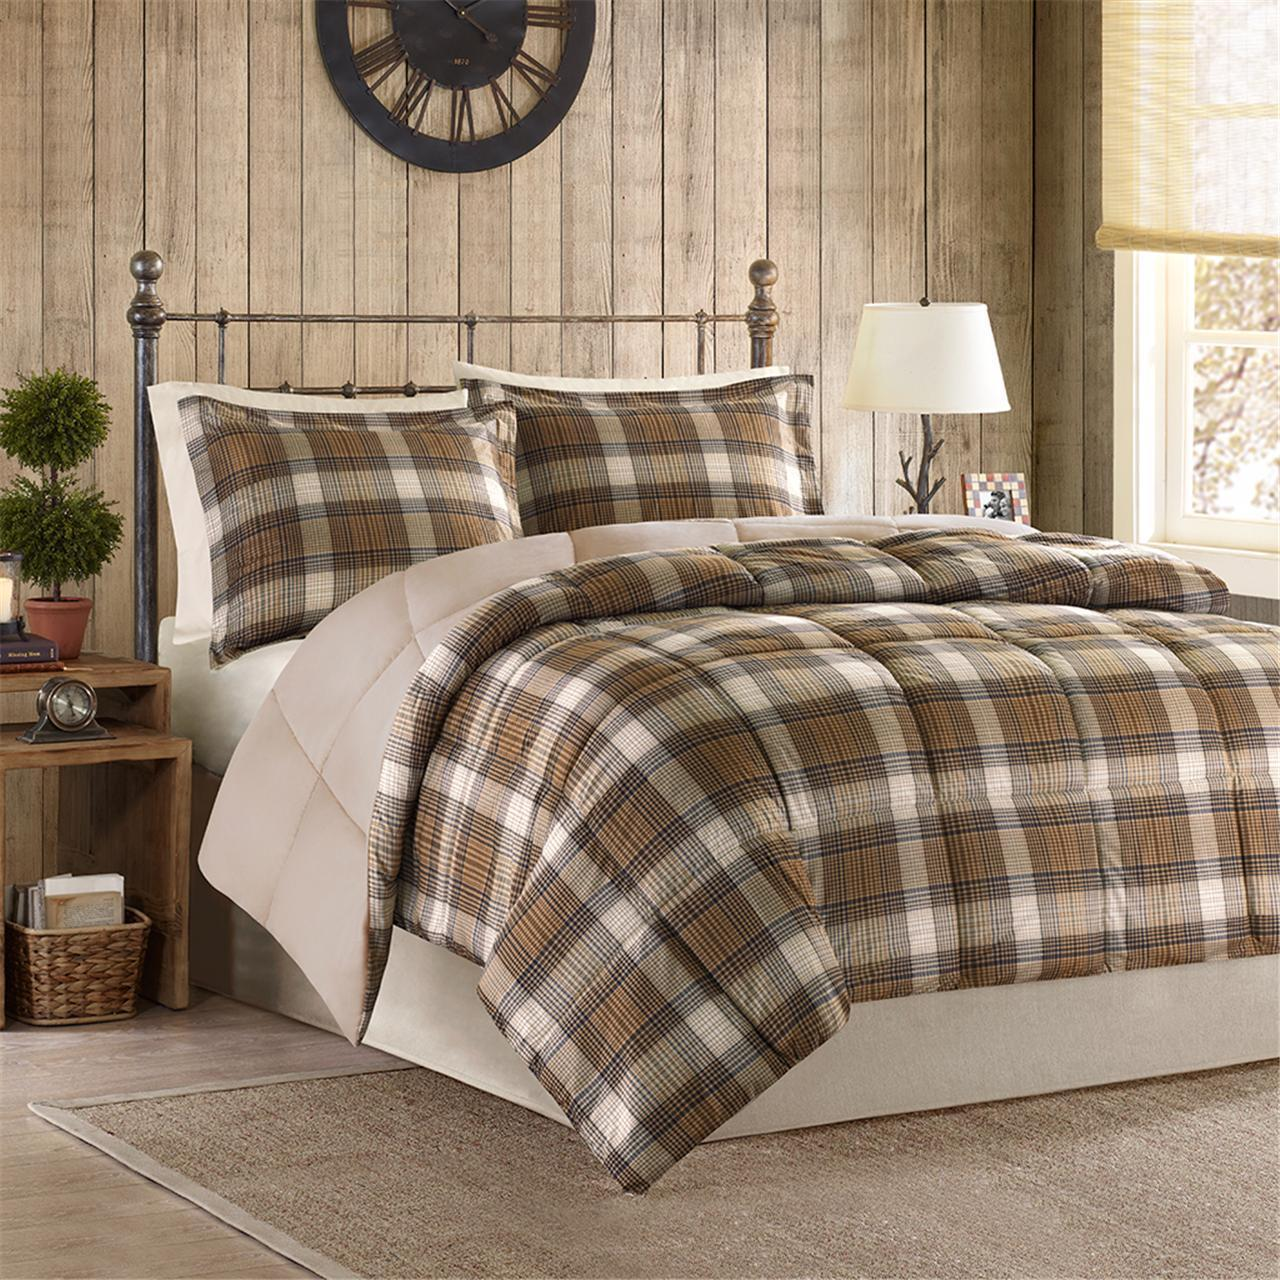 Beau ... Woolrich Lumberjack Softspun Down Alternative Comforter Set